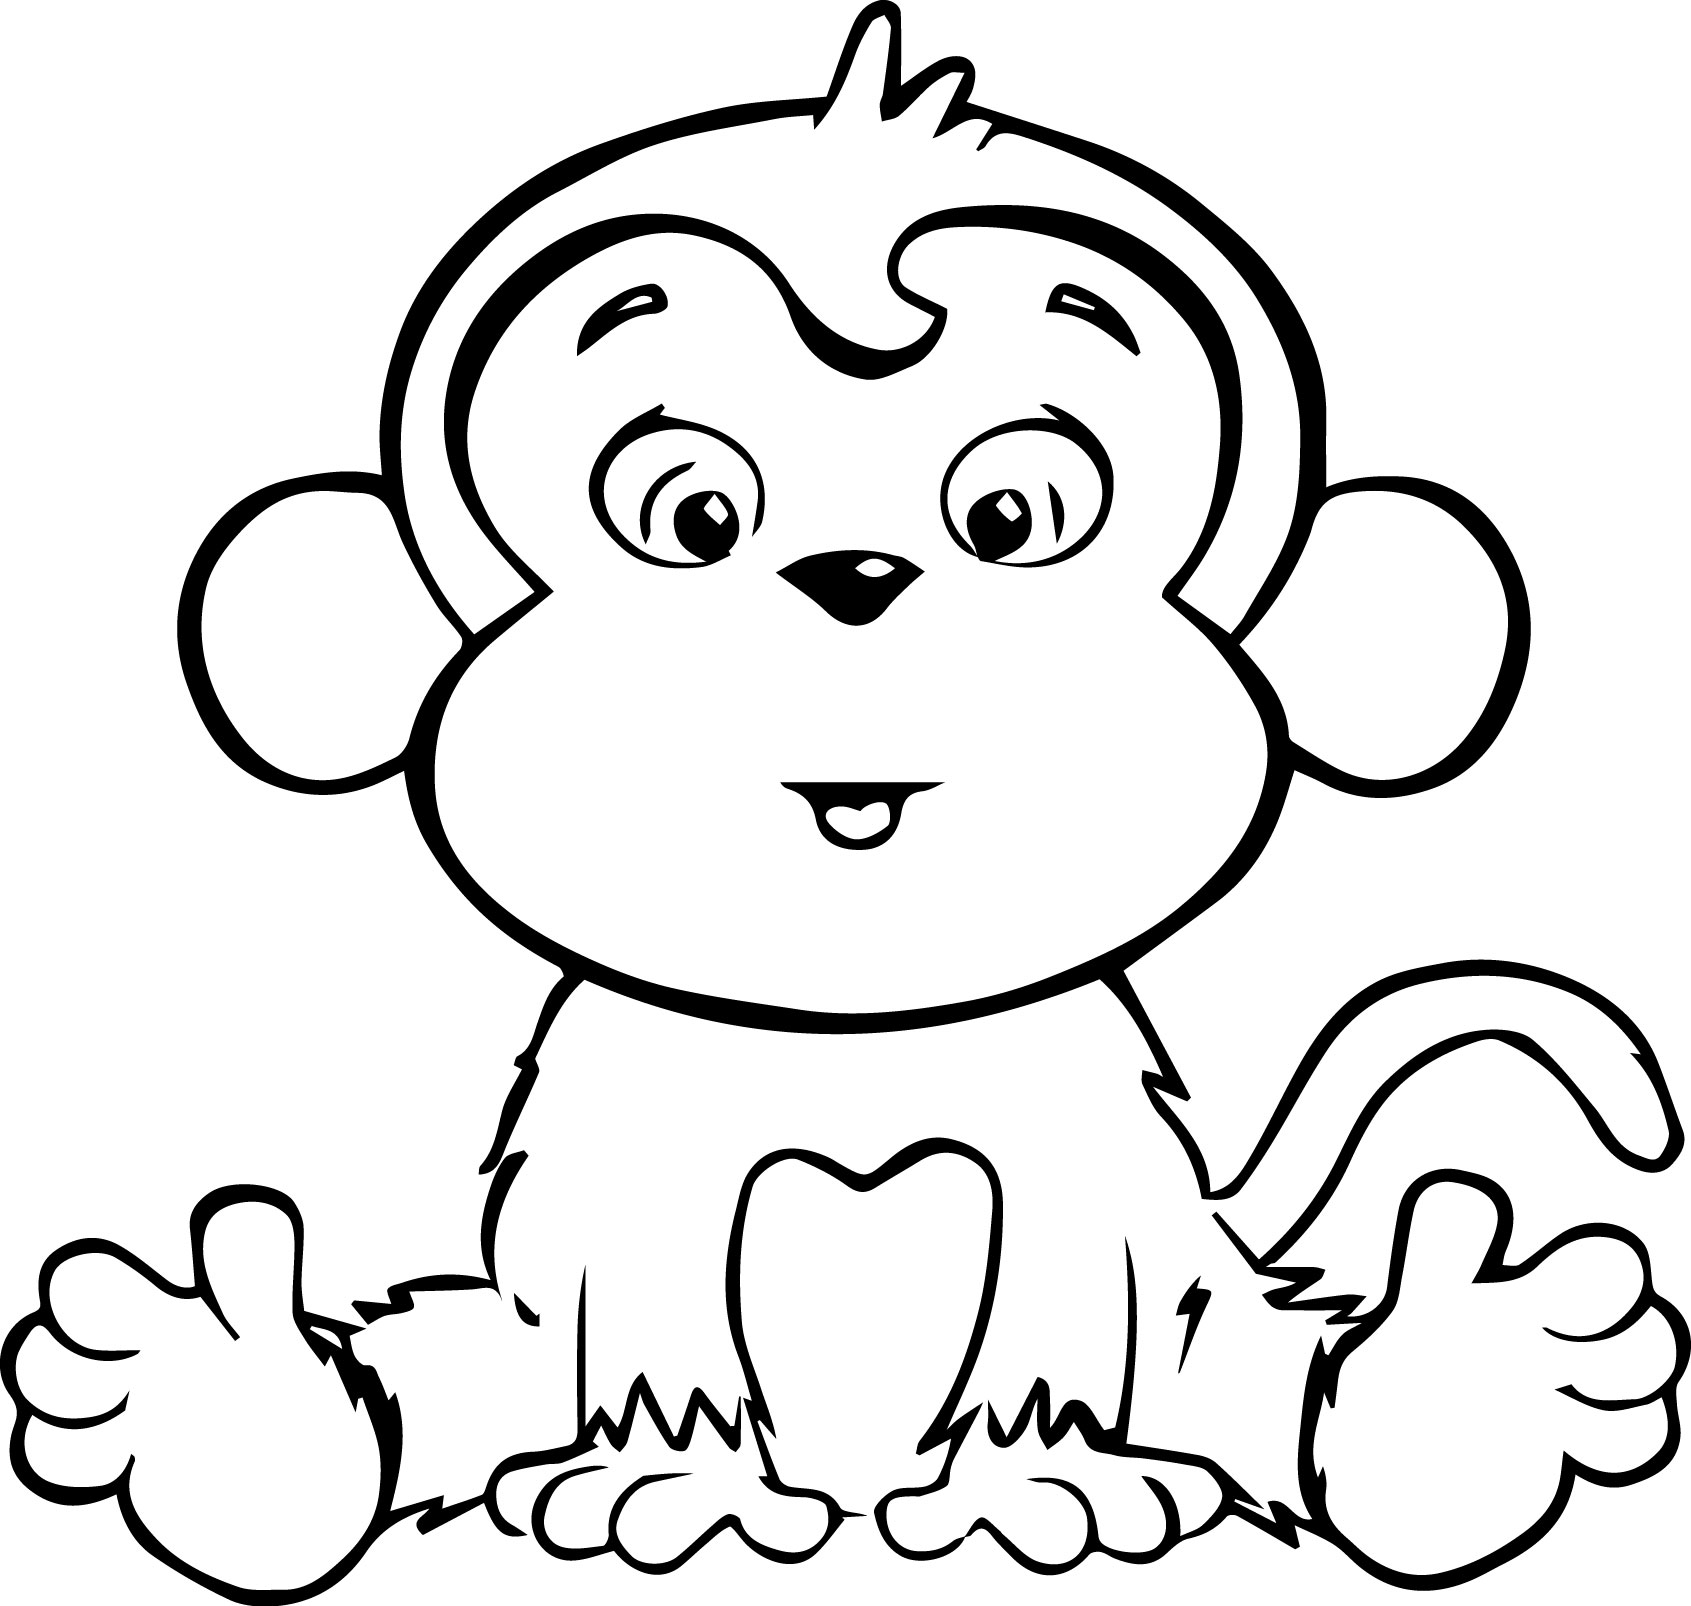 1691x1606 Affordable Cartoon Monkey Coloring Page With Monkey Coloring Pages